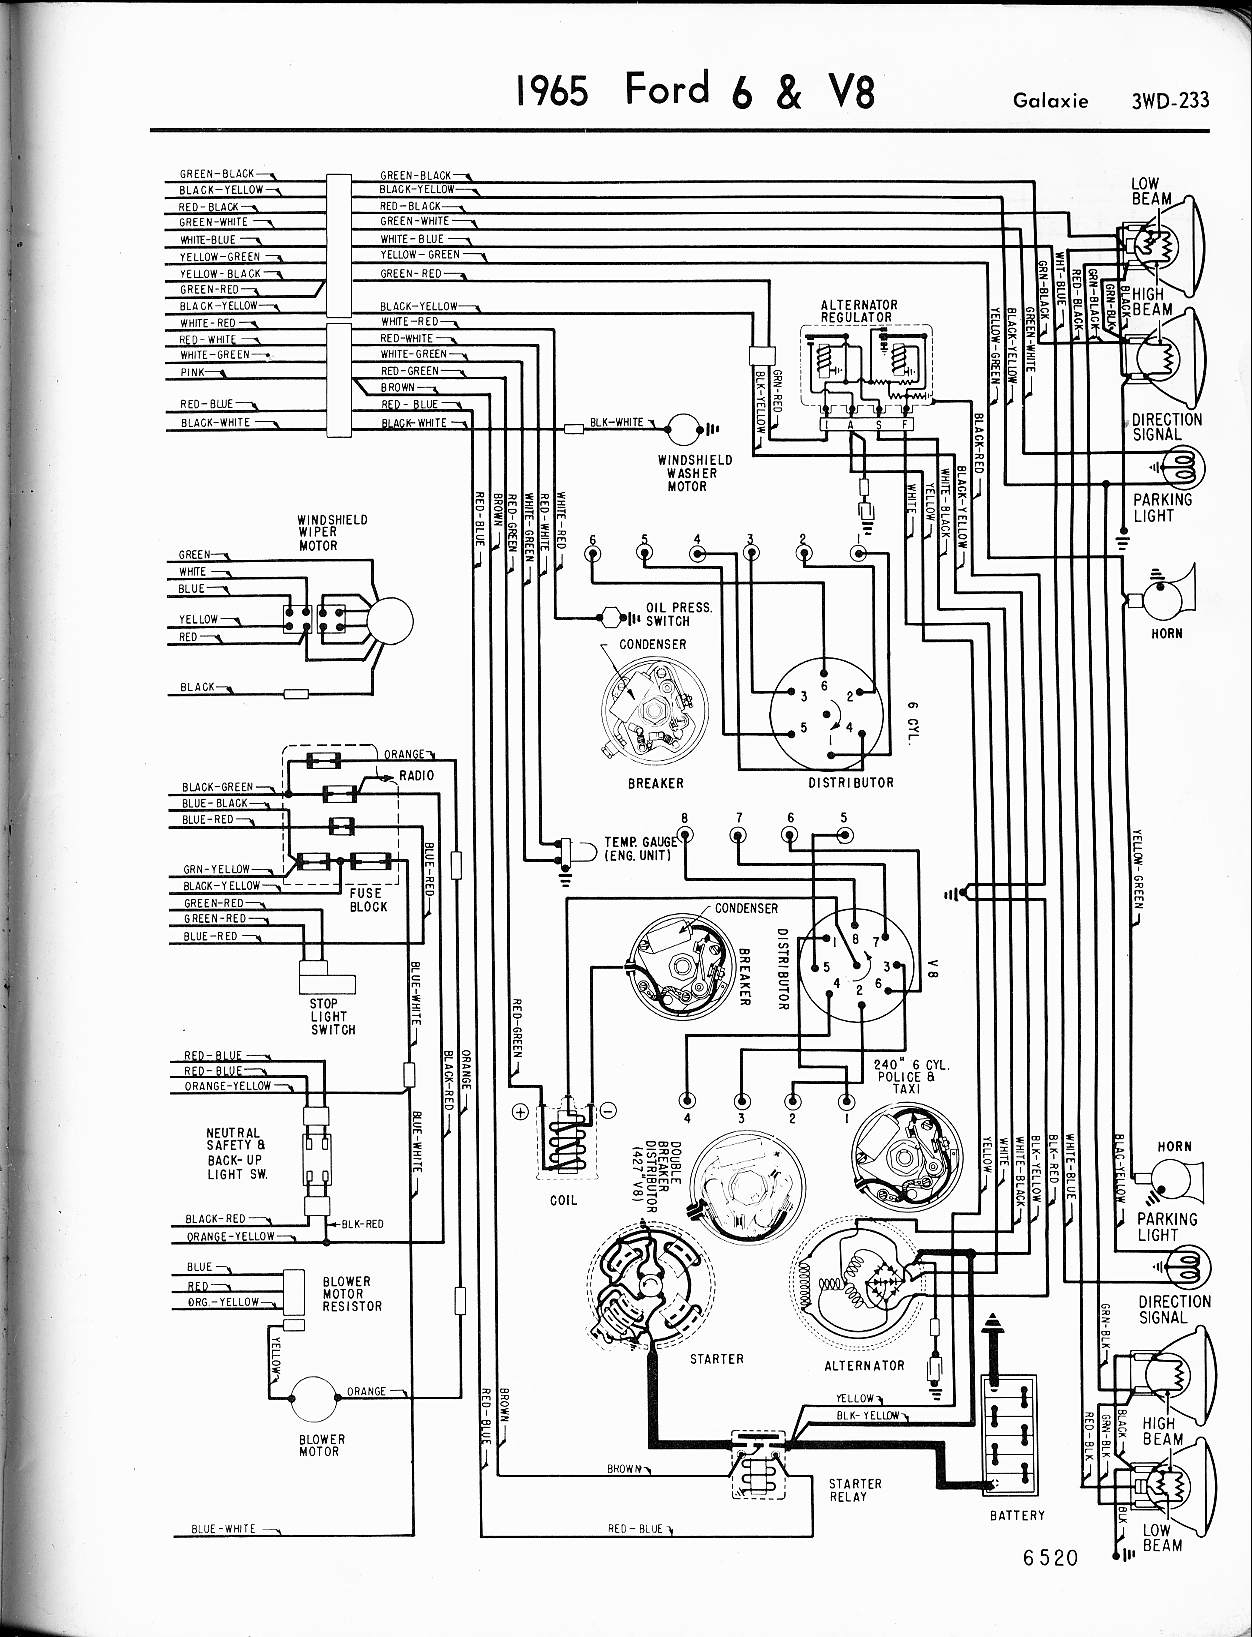 Ford Wiring | Manual E-Books - Ford Wiring Diagram